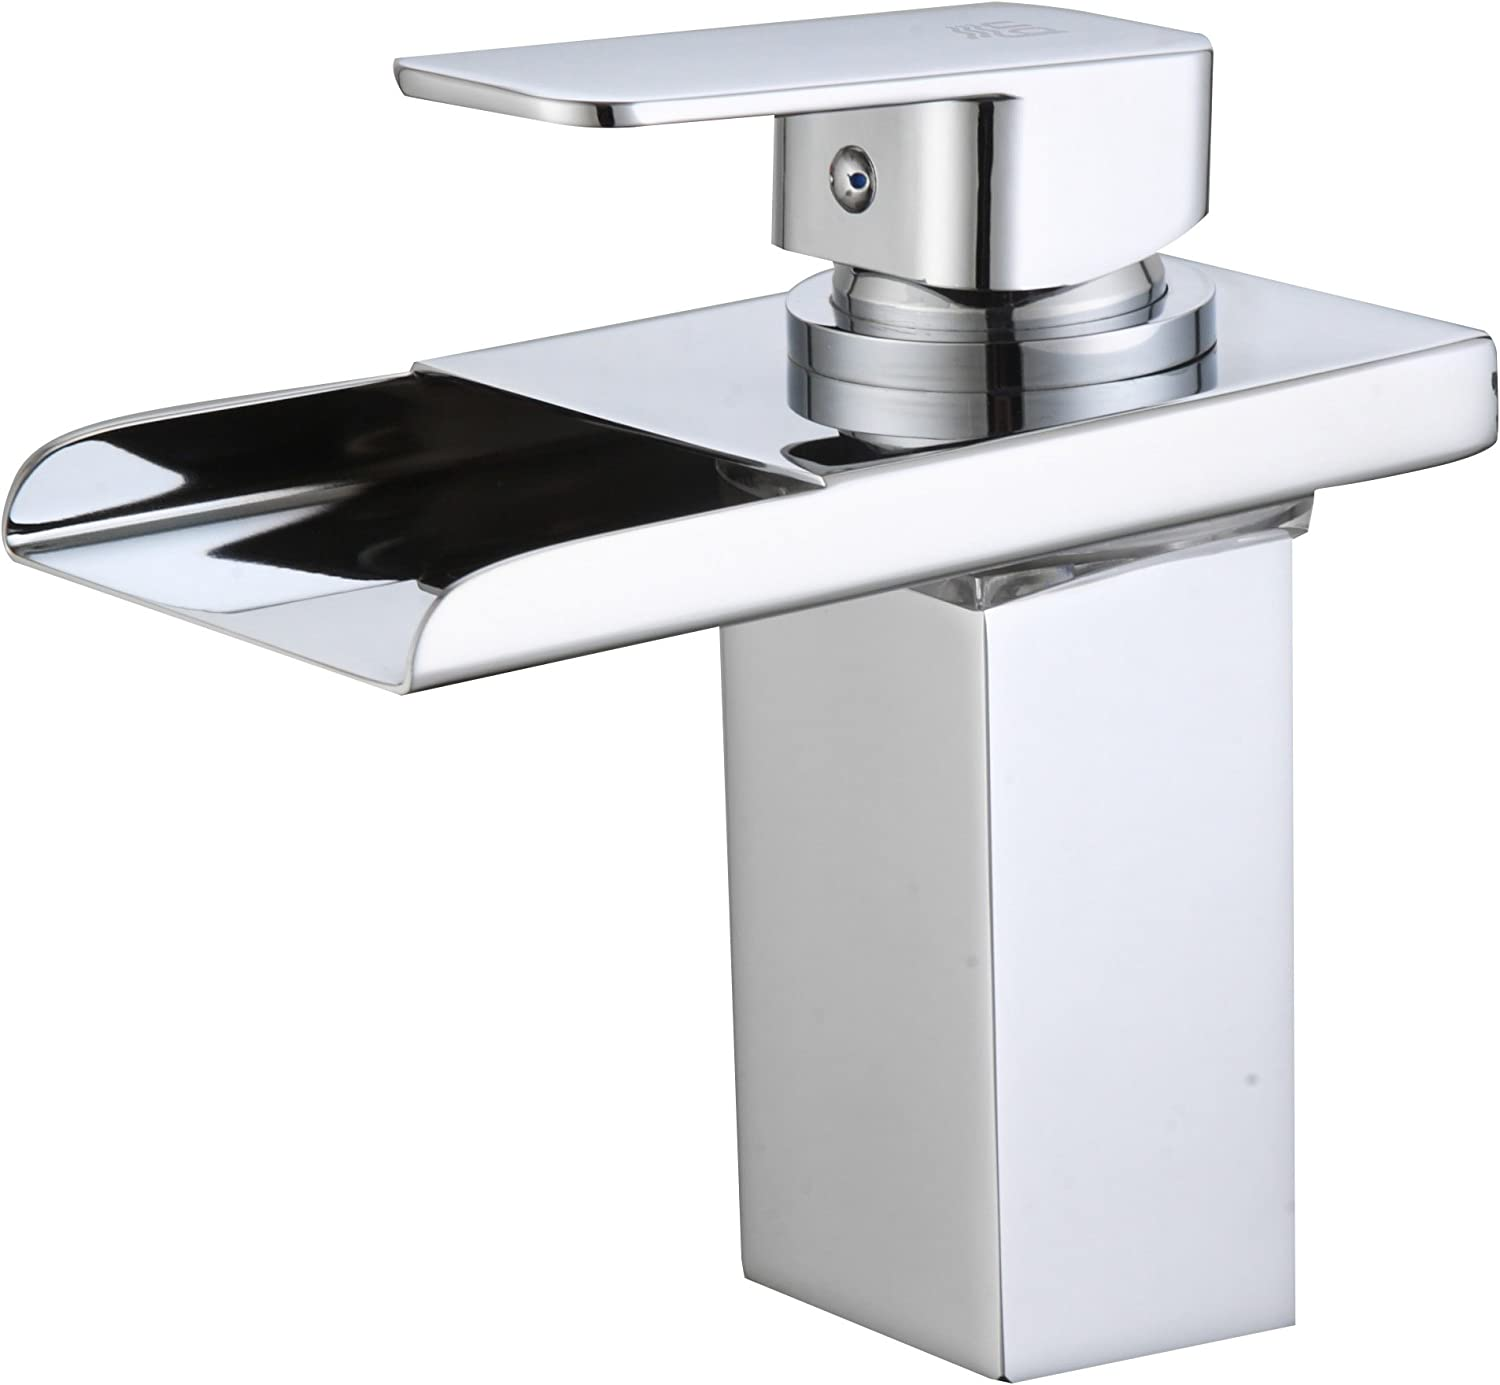 DP Bath Aries- Basin mixer tap, waterfall effect with LEDs